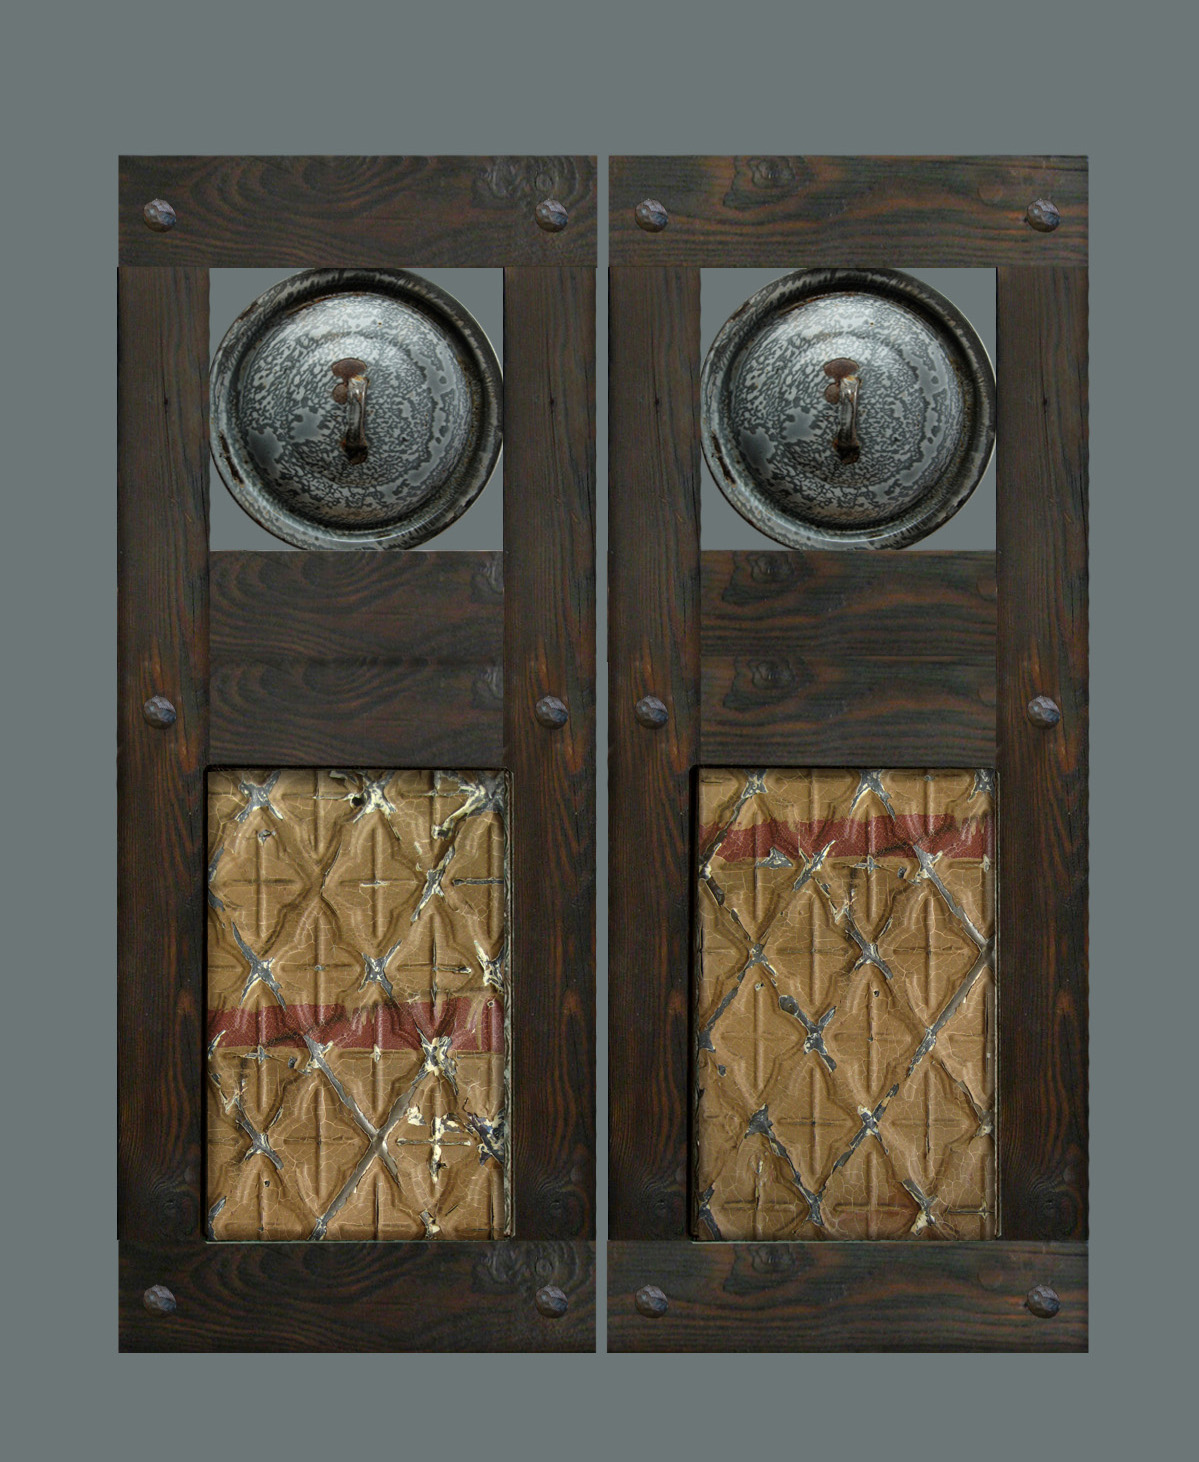 Handcrafted custom swinging saloon doors - Handcrafted Swinging Saloon Doors With Vintage Enamel Pot Lids And Victorian Tin Ceiling Panels